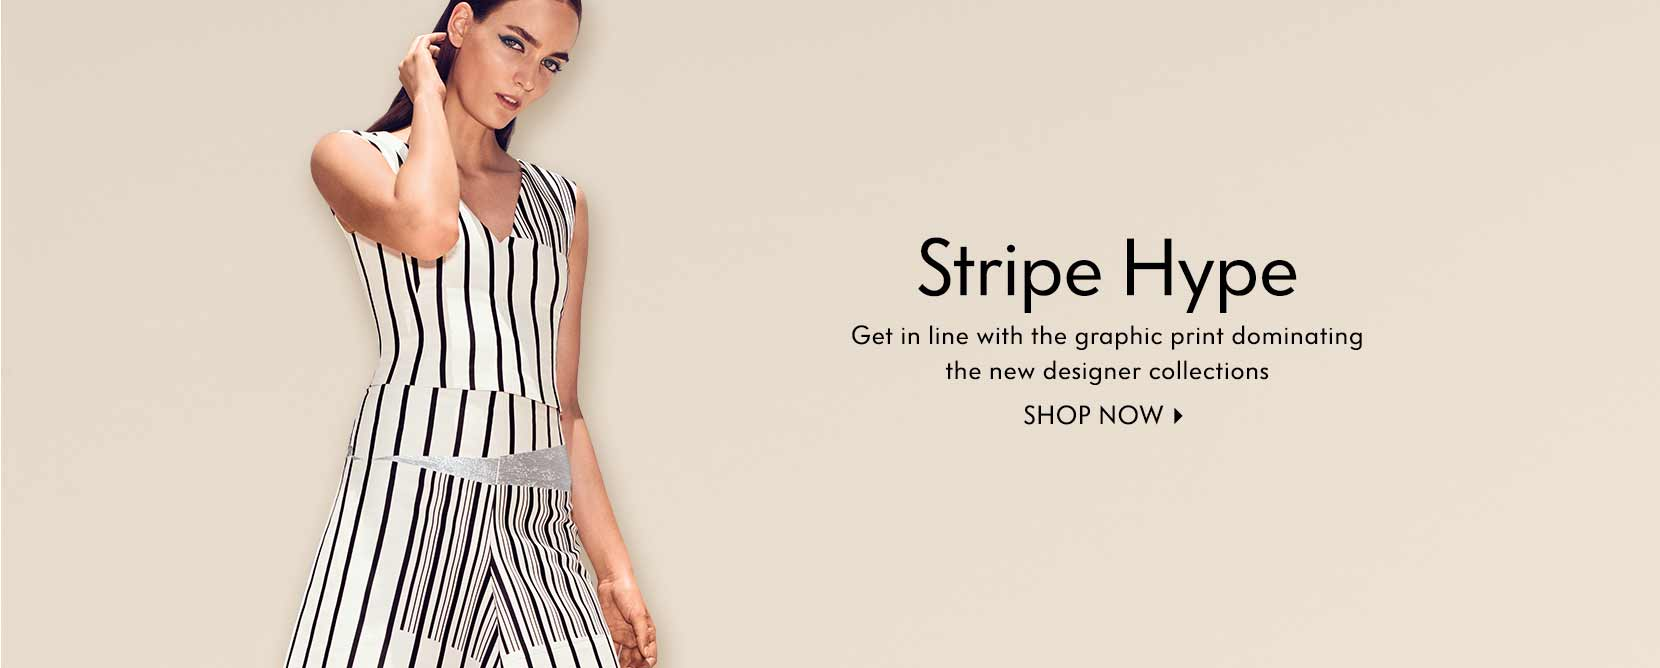 Stripe Hype Get in line with the graphic print dominating the new designer collections